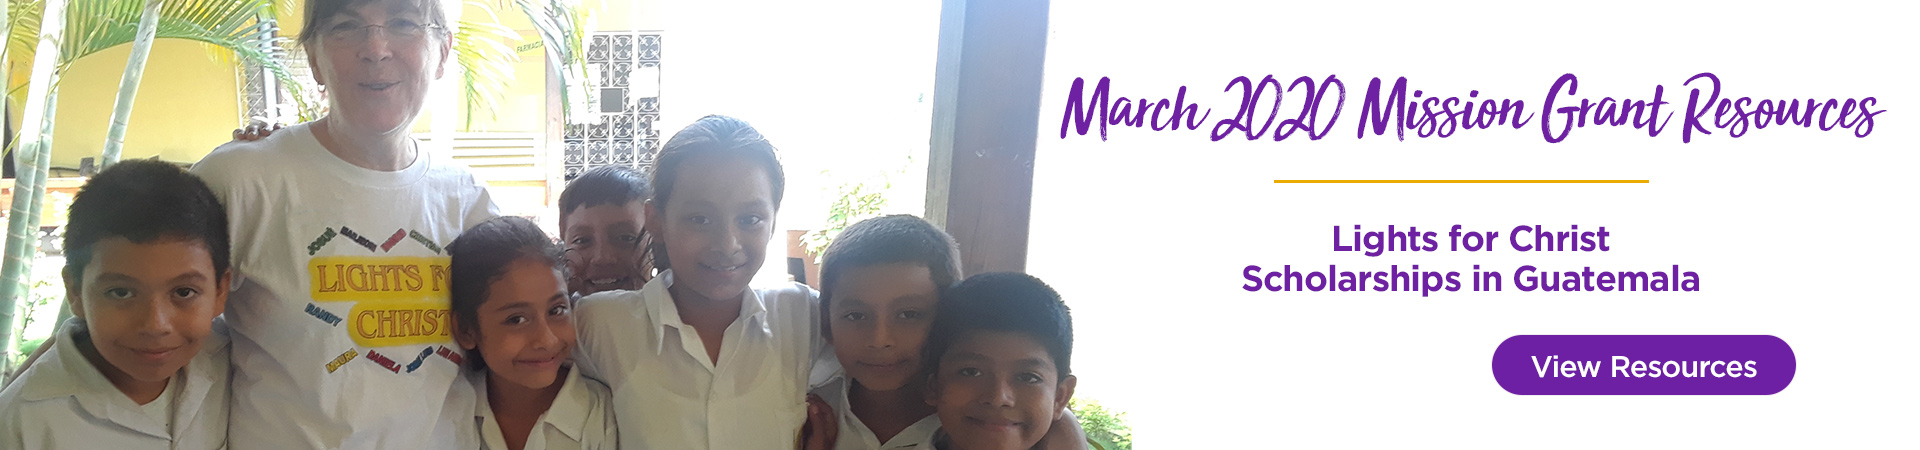 March Mission Grant Resources: Lights for Christ Scholarships in Guatemala